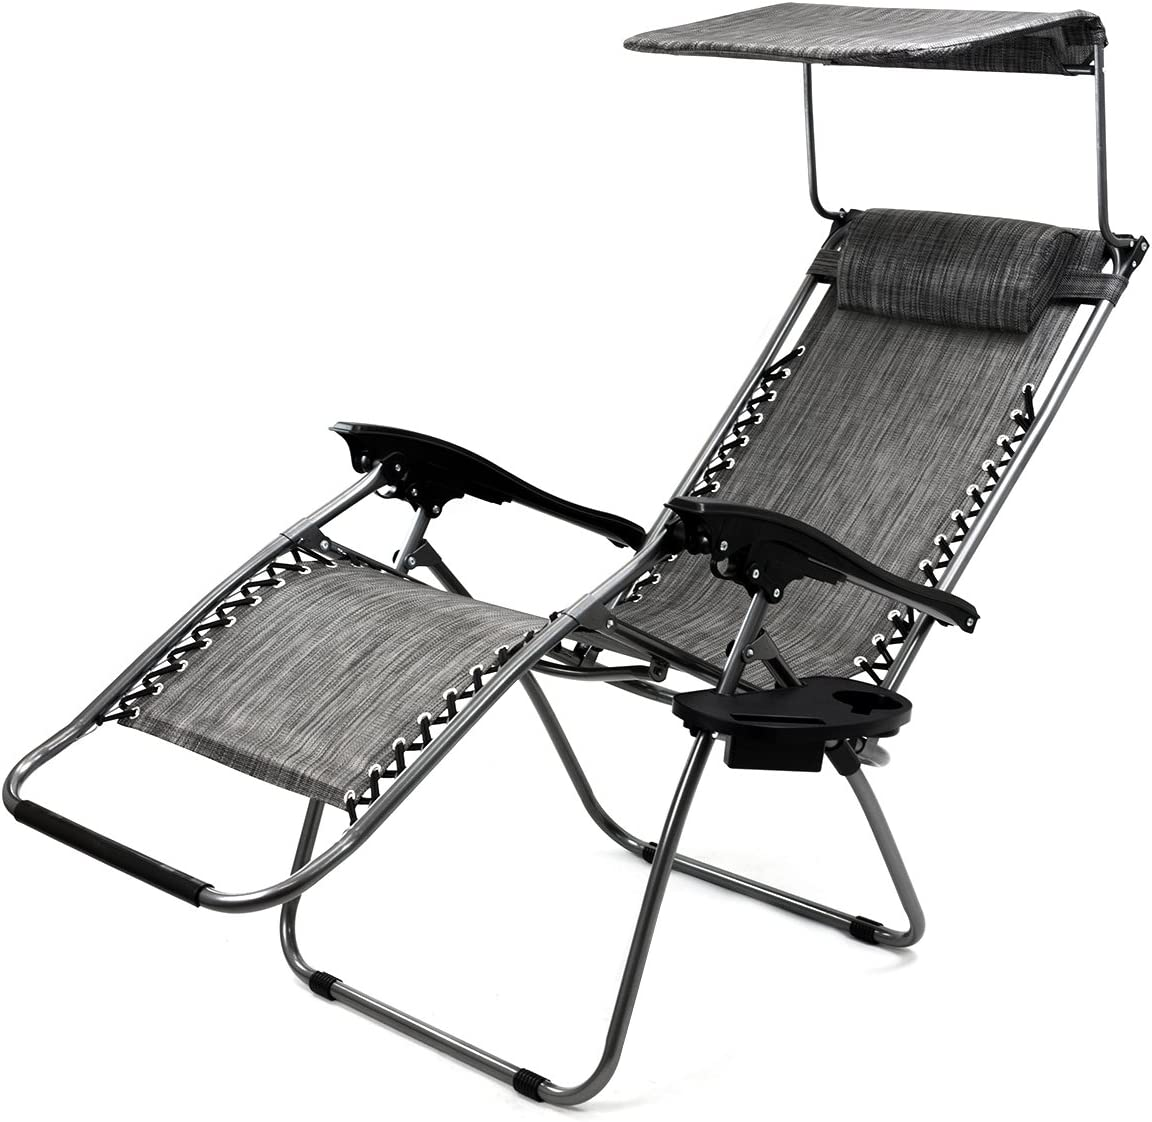 XtremepowerUS Zero Gravity Chair Adjustable Reclining Chair Pool Patio Outdoor Lounge Chairs w Cup Holder Gray-Single w Sunshade